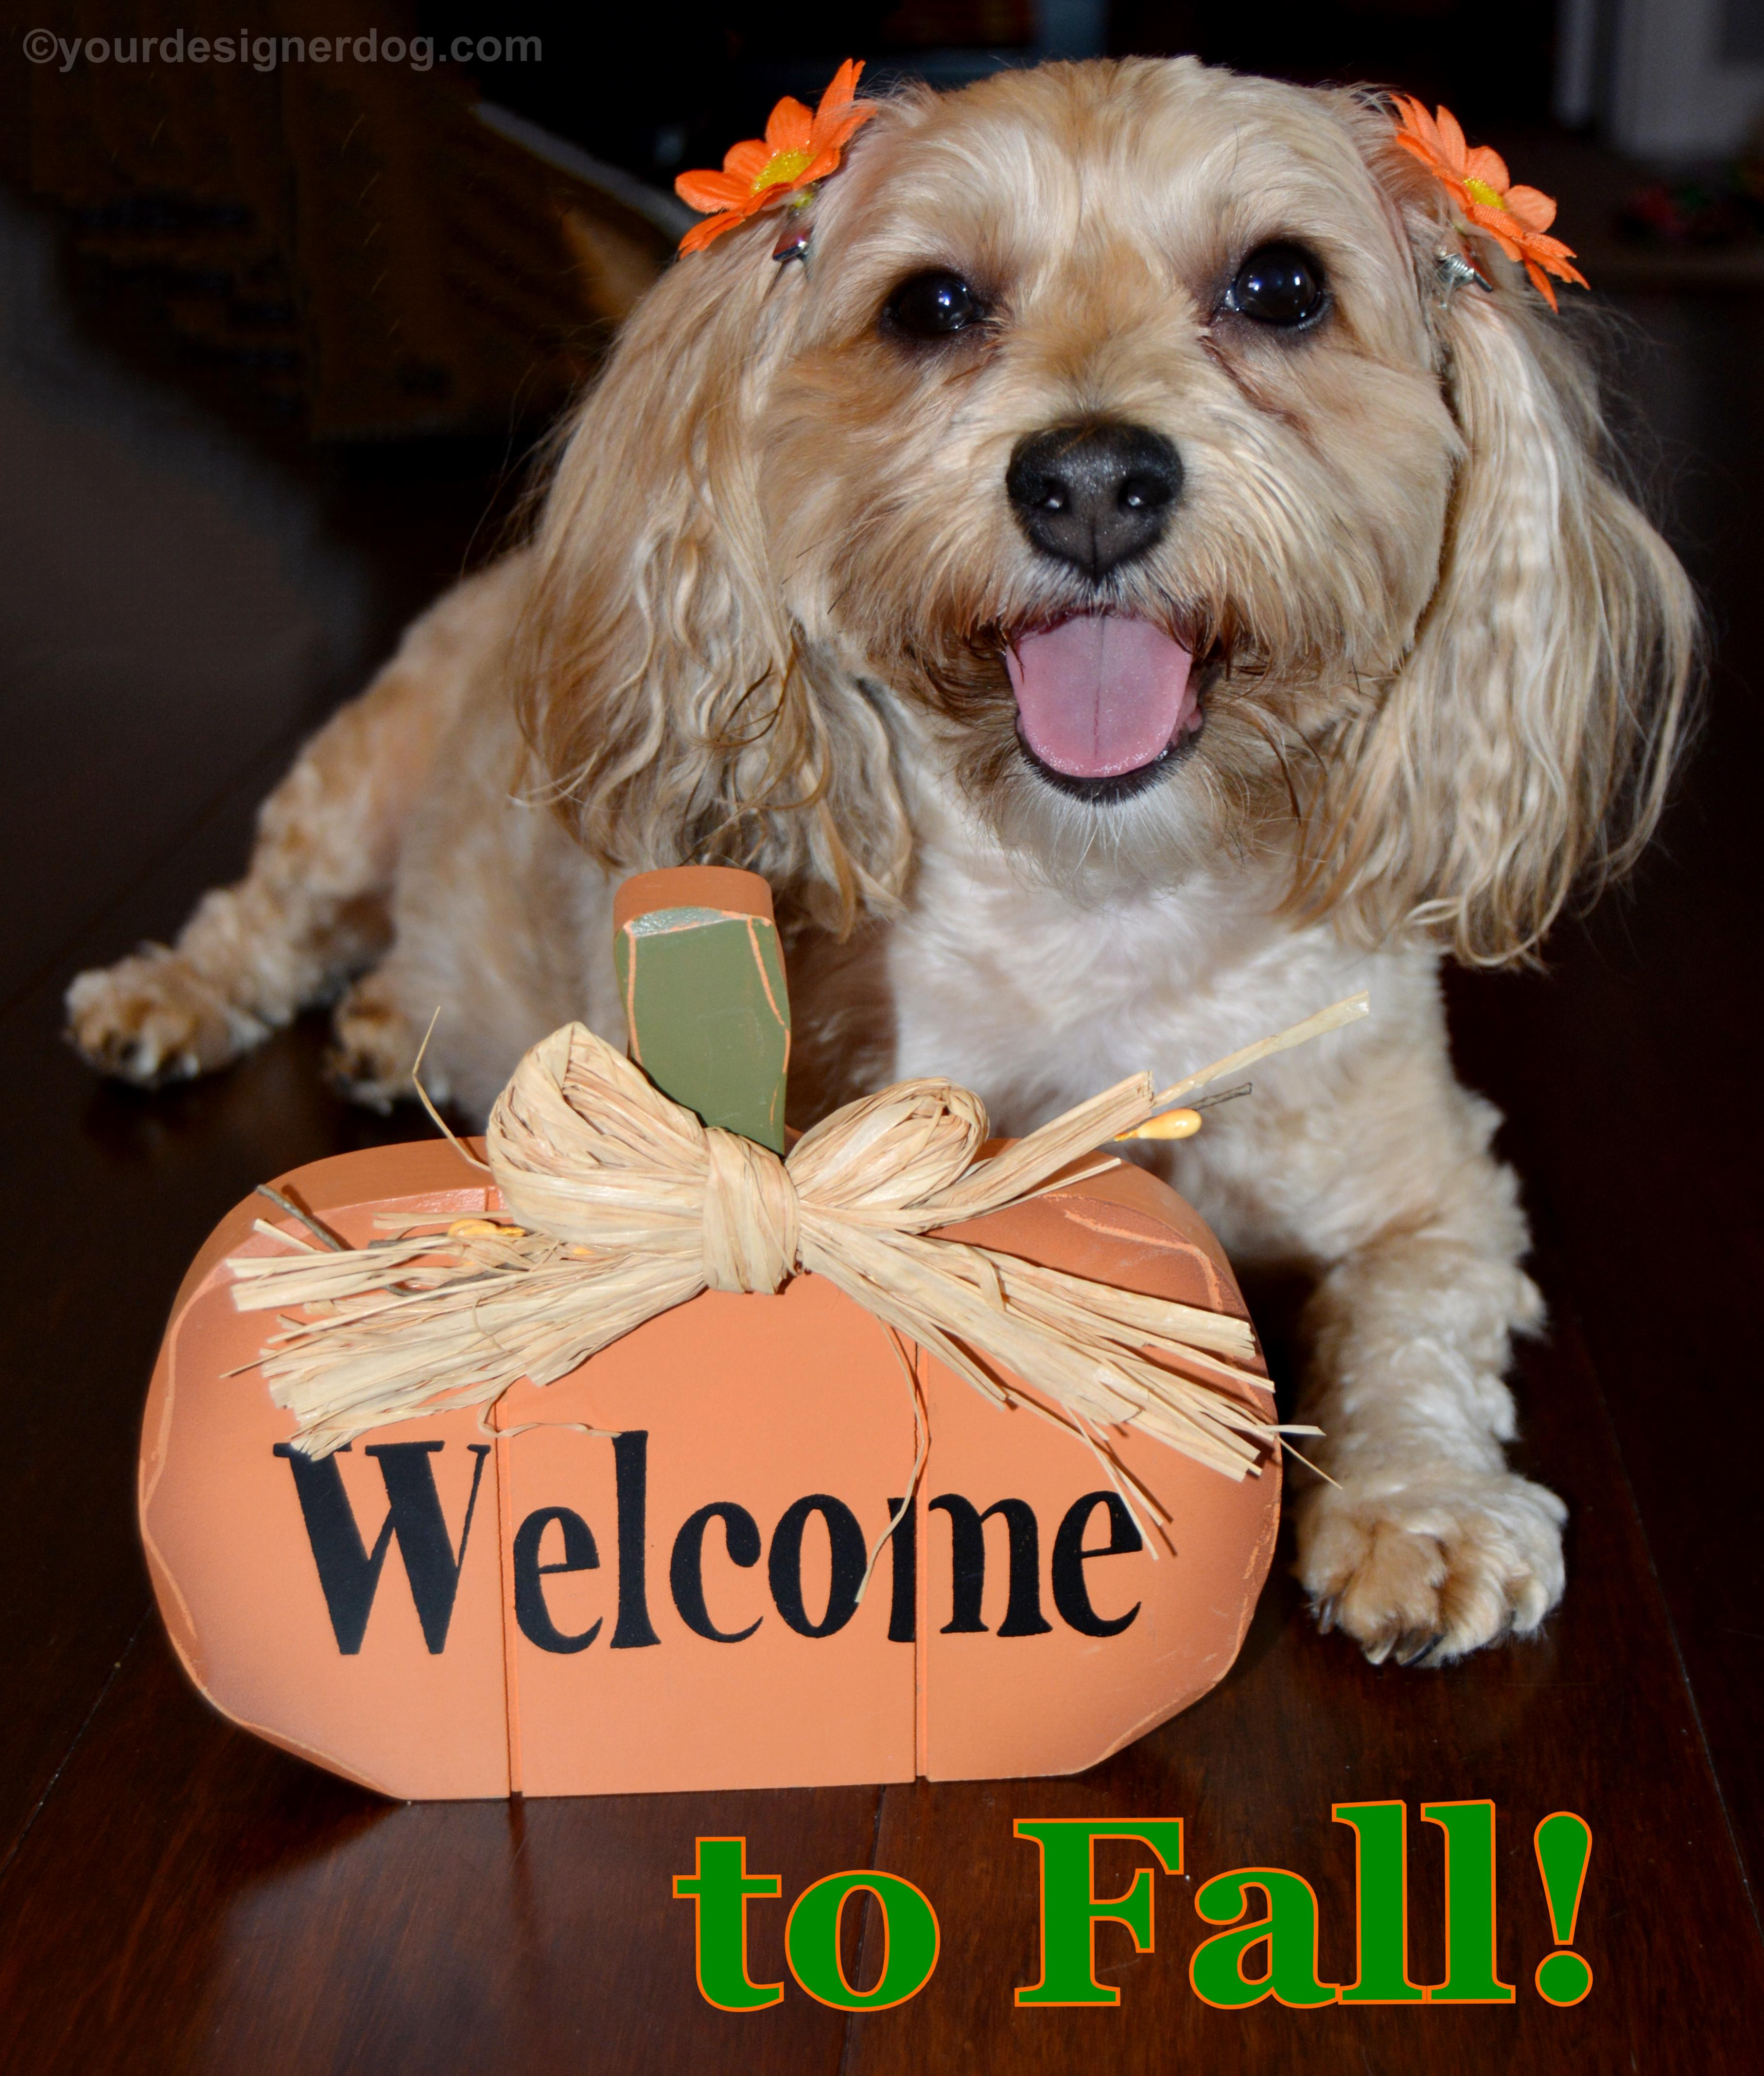 Welcome to Fall!